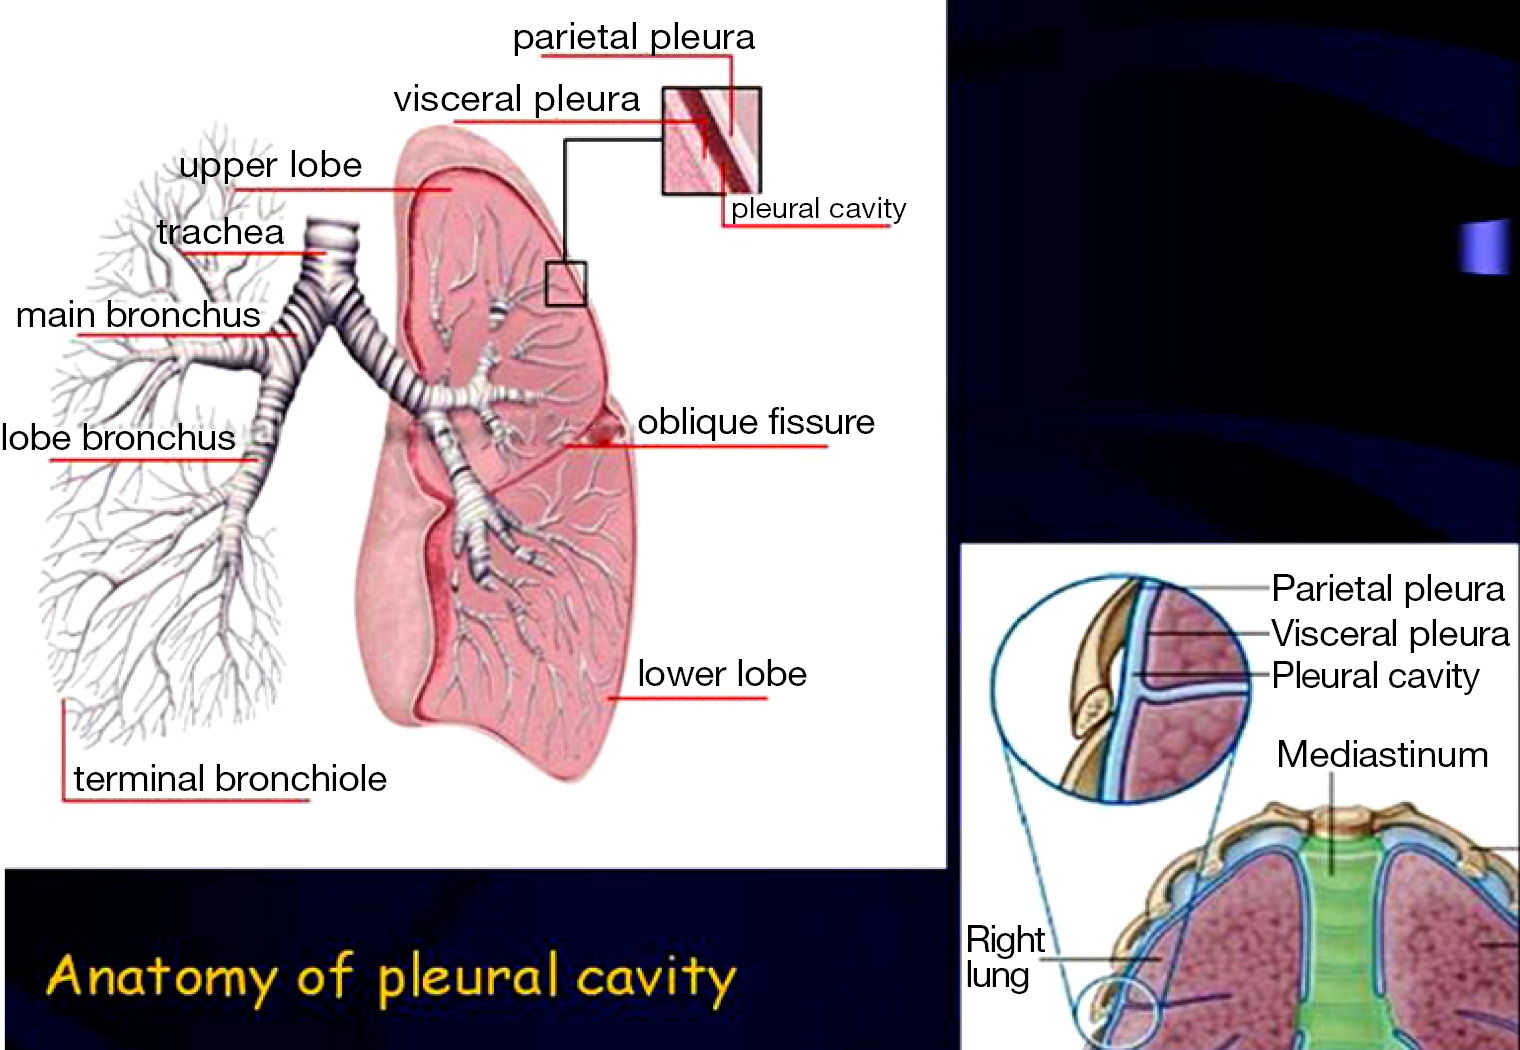 Pleura Space Anatomy Charalampidis Journal Of Thoracic Disease